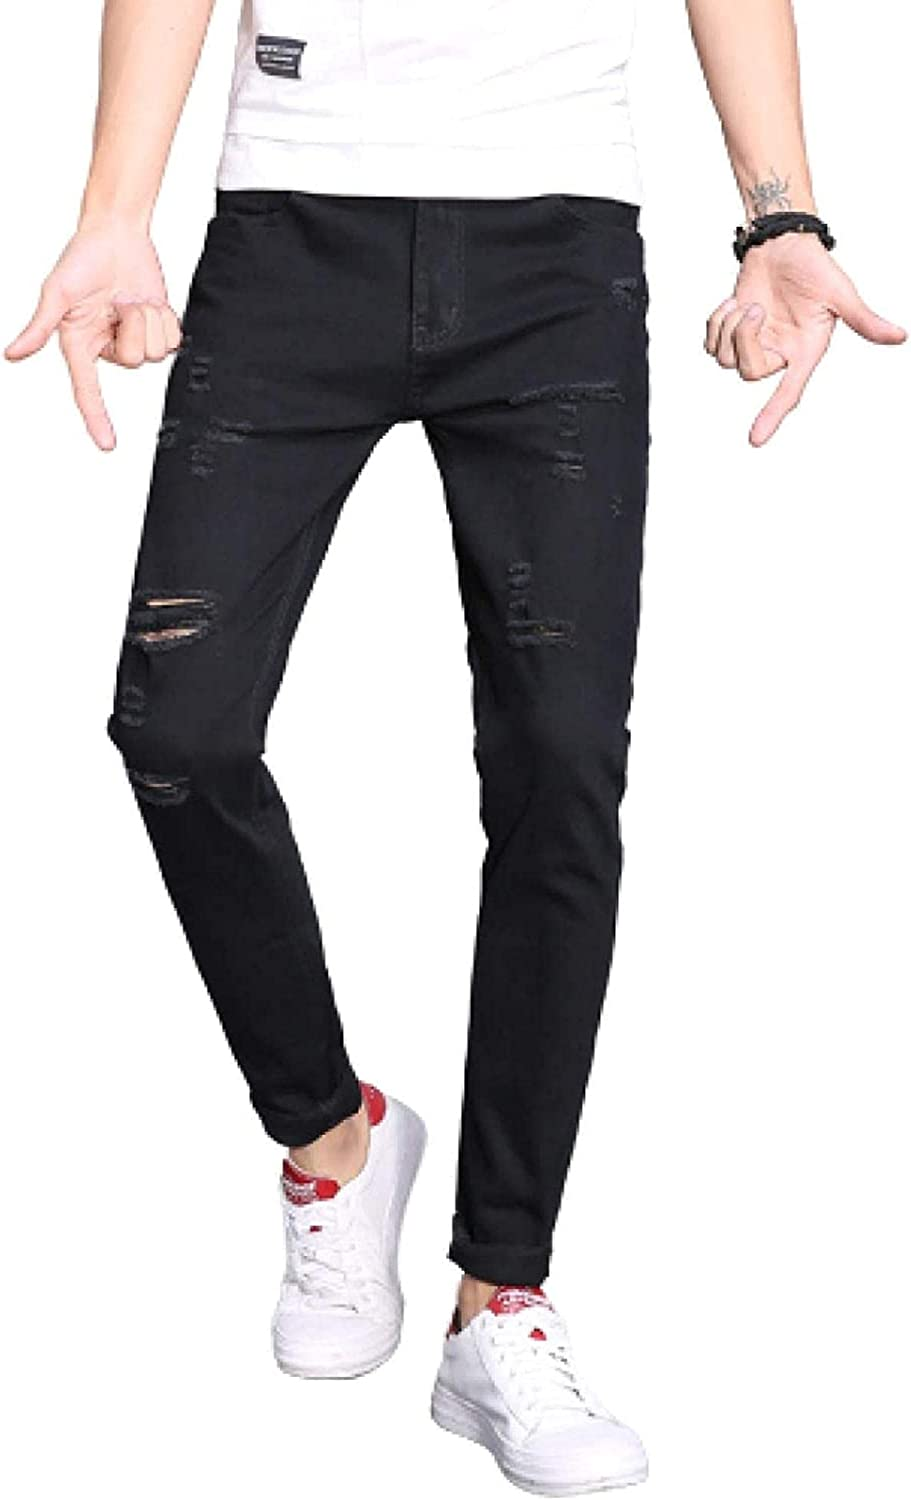 Men's Ripped Jeans Stretch Skinny Slim B Fit Cotton Pants Pencil Challenge the lowest price of Japan Superlatite